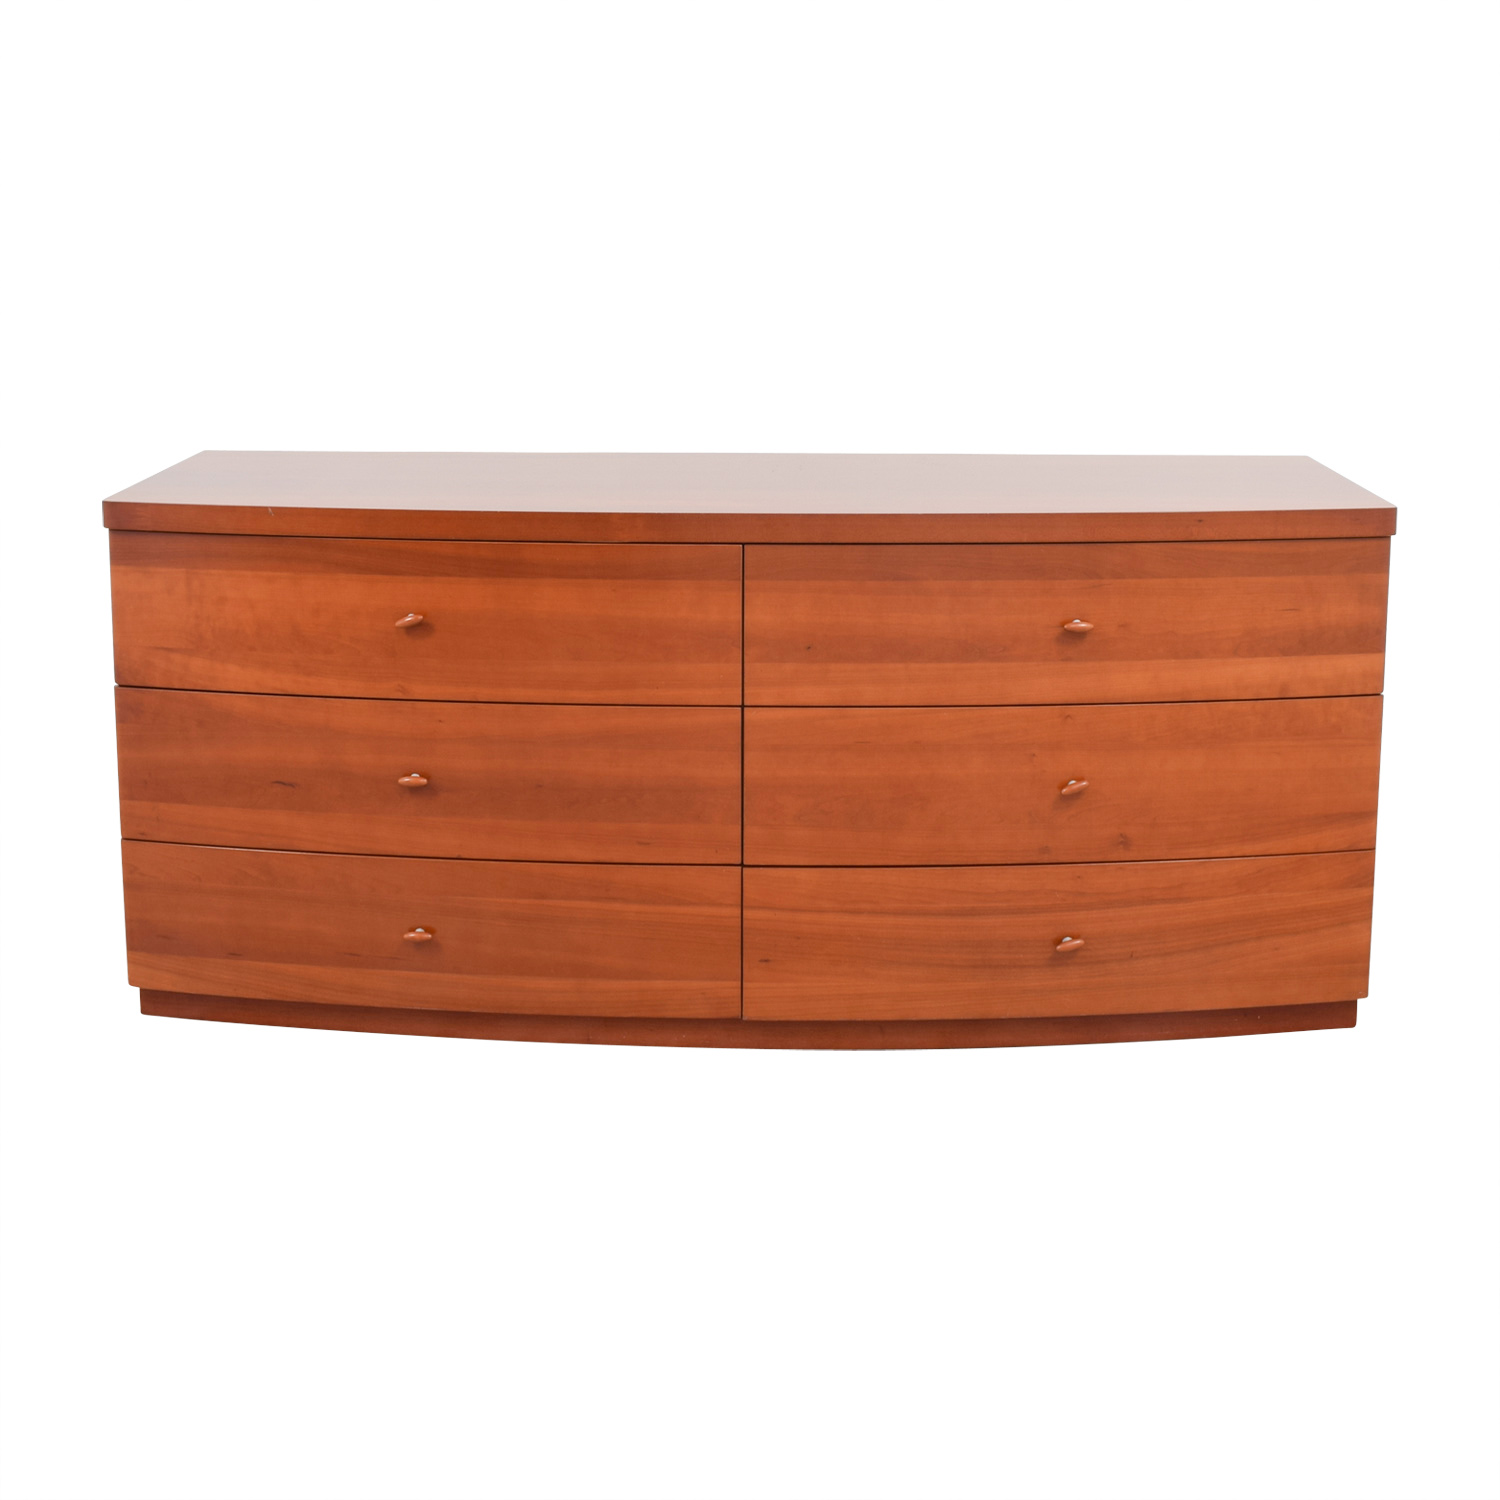 Italian Curved Six-Drawer Double Dresser on sale